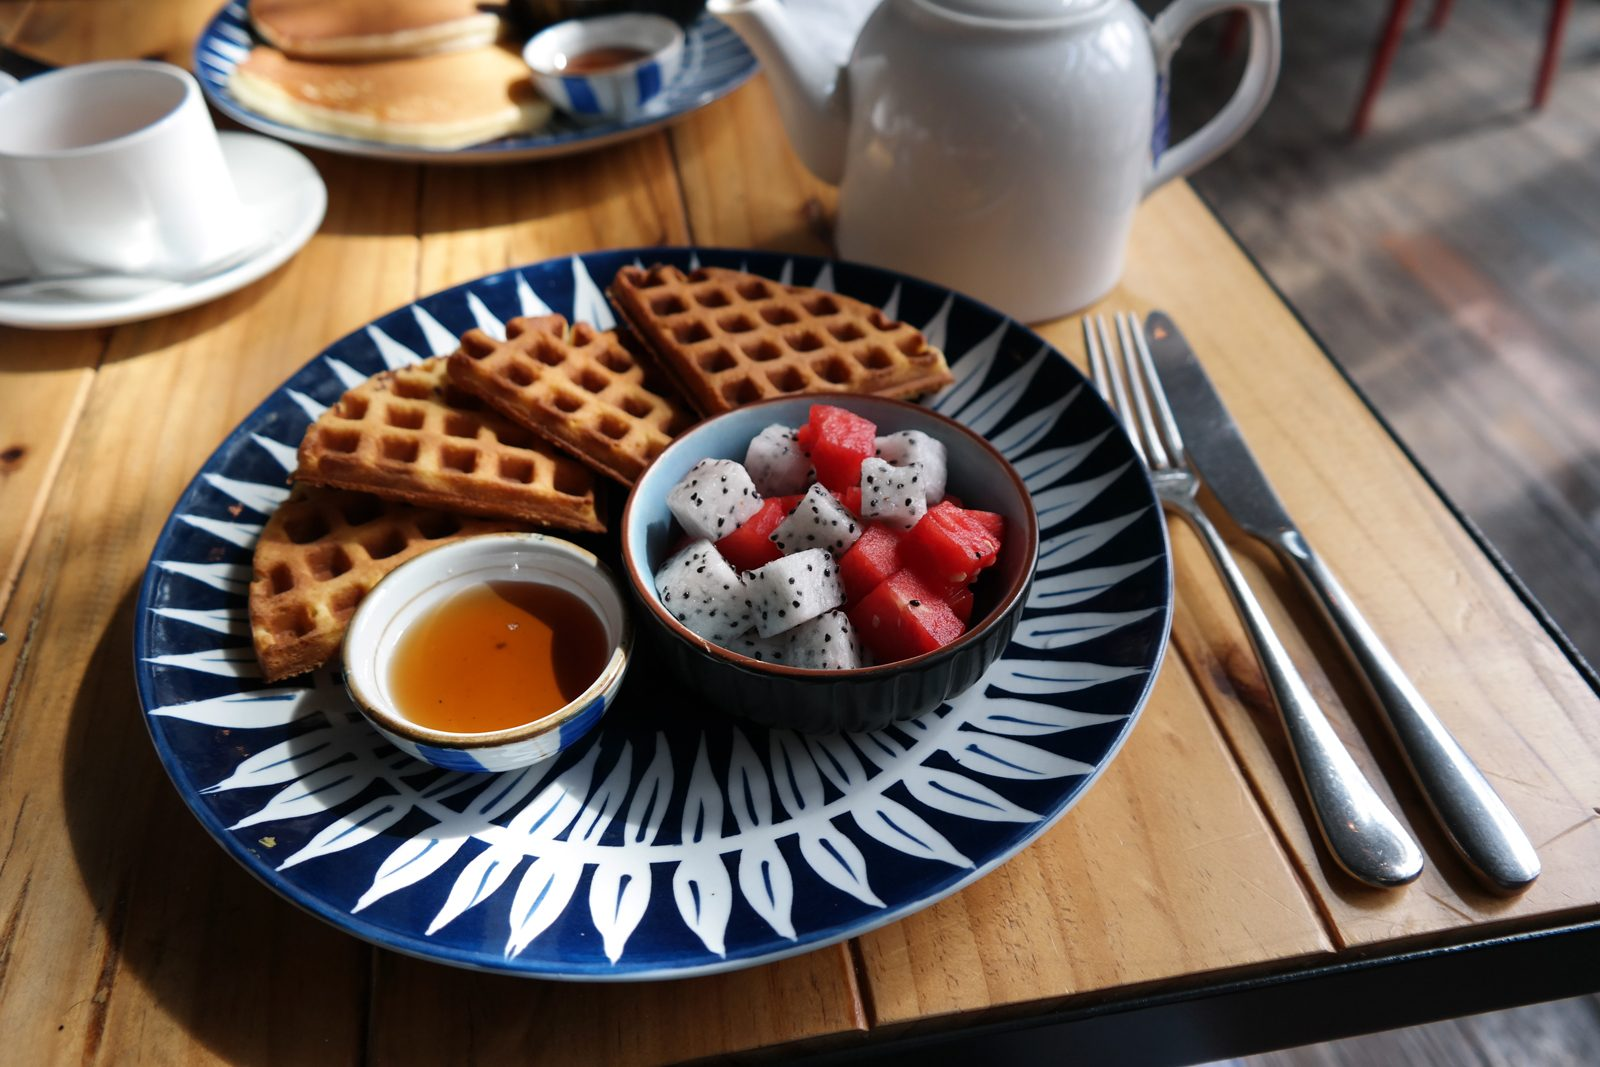 Waffles breakfast Beergrdn restaurant bar design URBN Hotel Shanghai boutique hotel photo usofparis travel blog